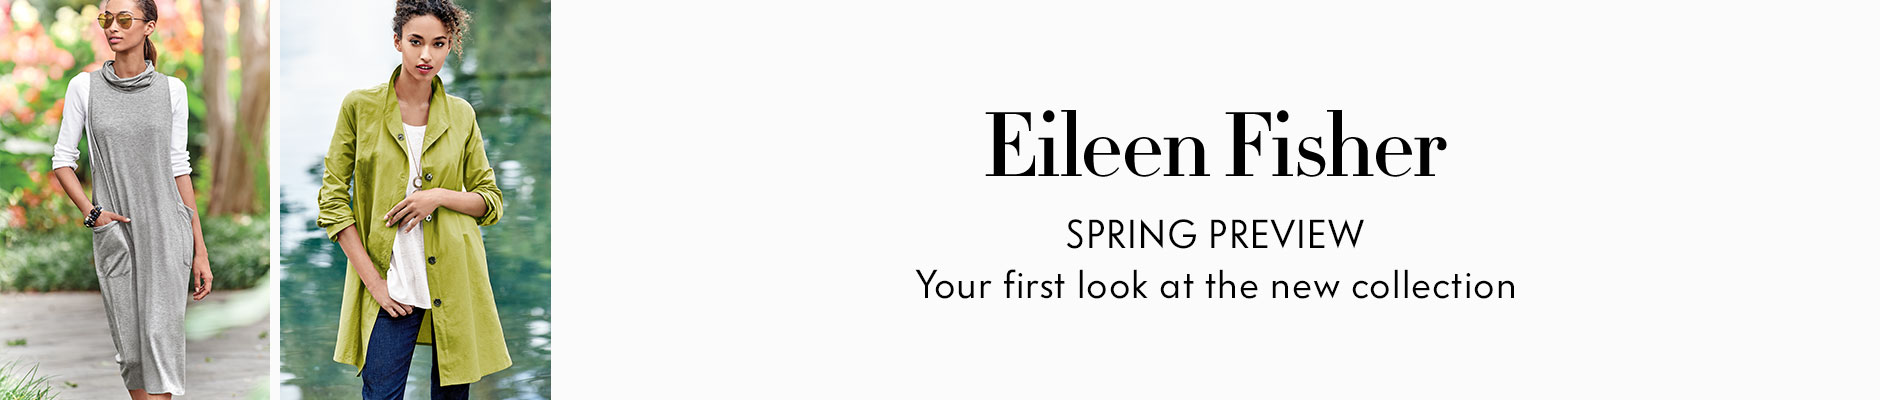 Eileen Fisher: Spring Preview - Your first look at the new collection